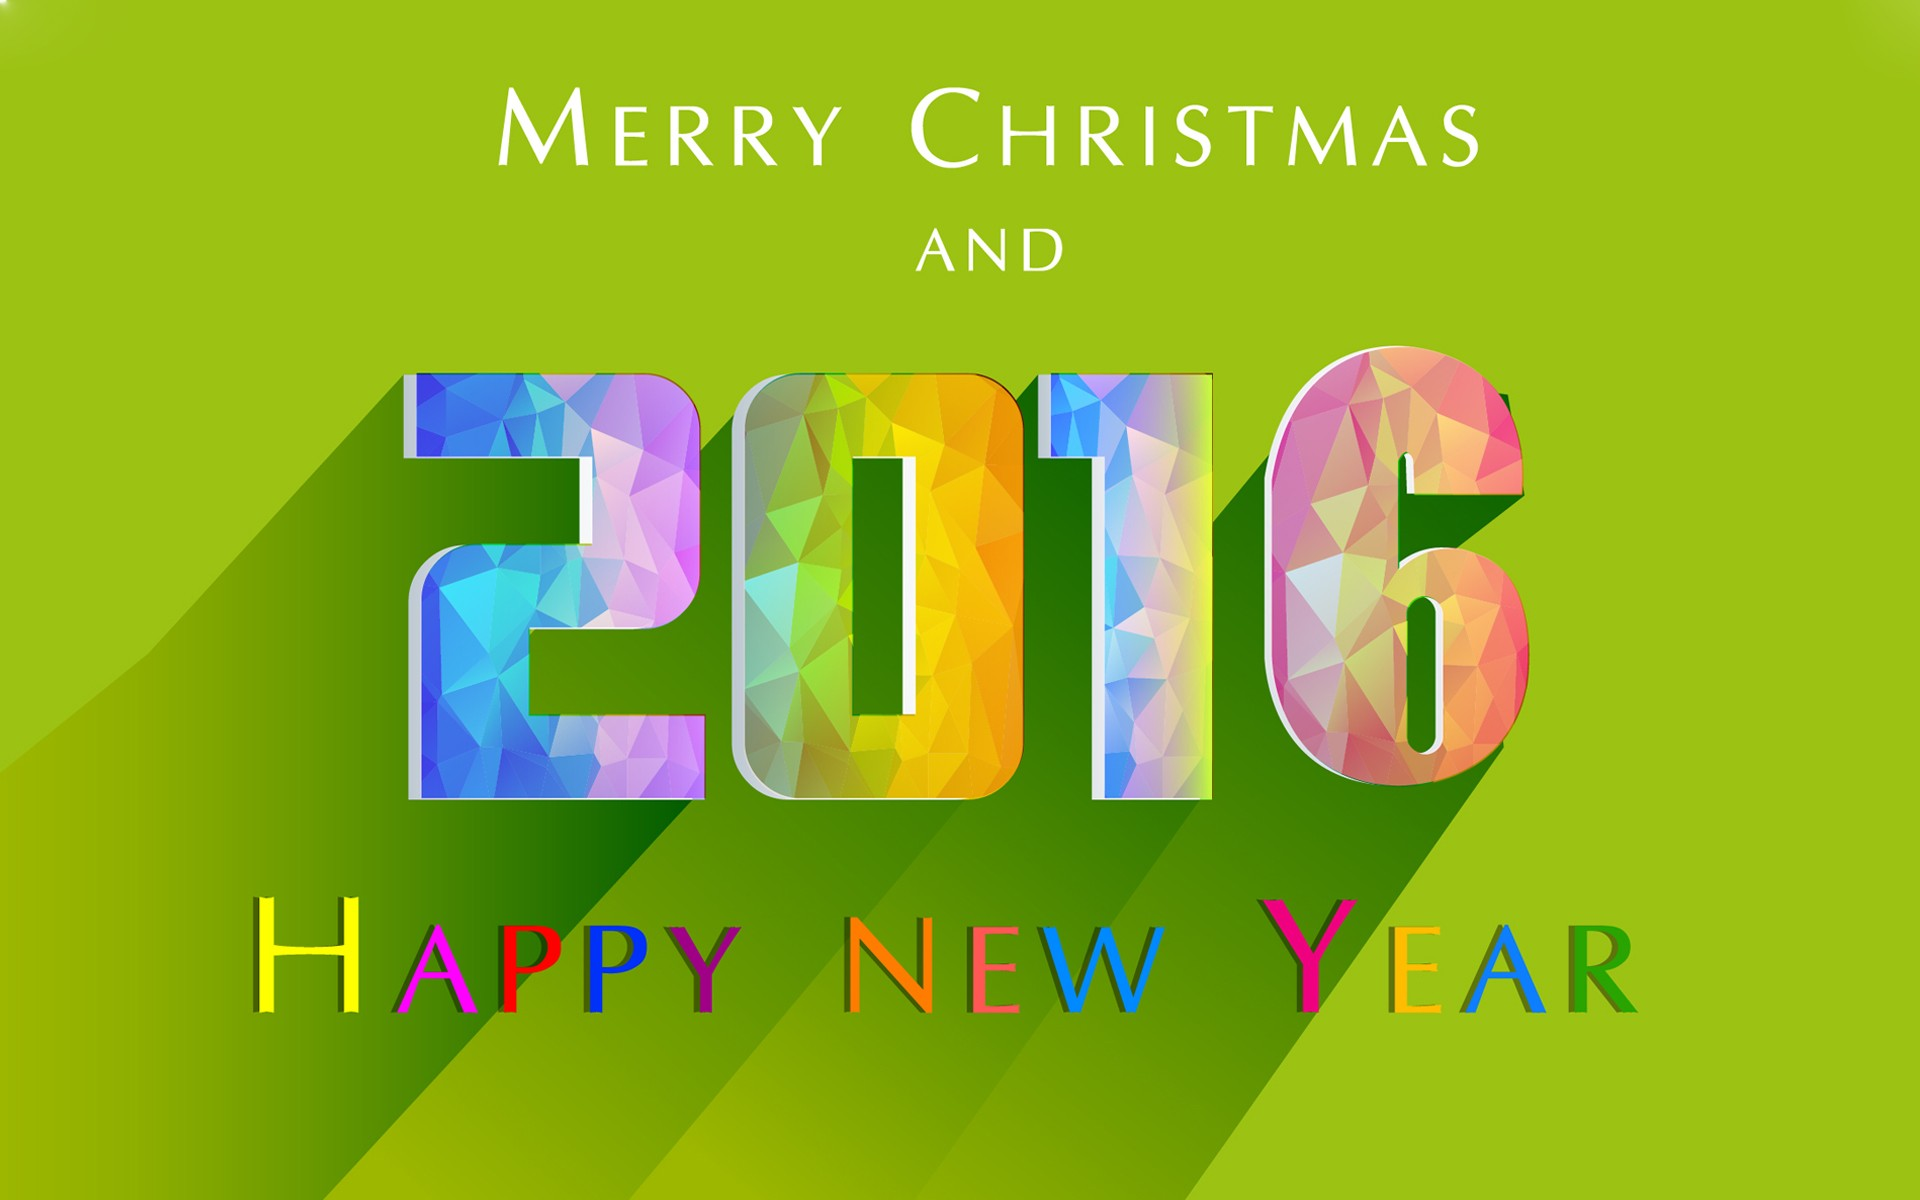 Free Download Happy New Year 2016 Hd Wallpaper New Hd Wallpapers